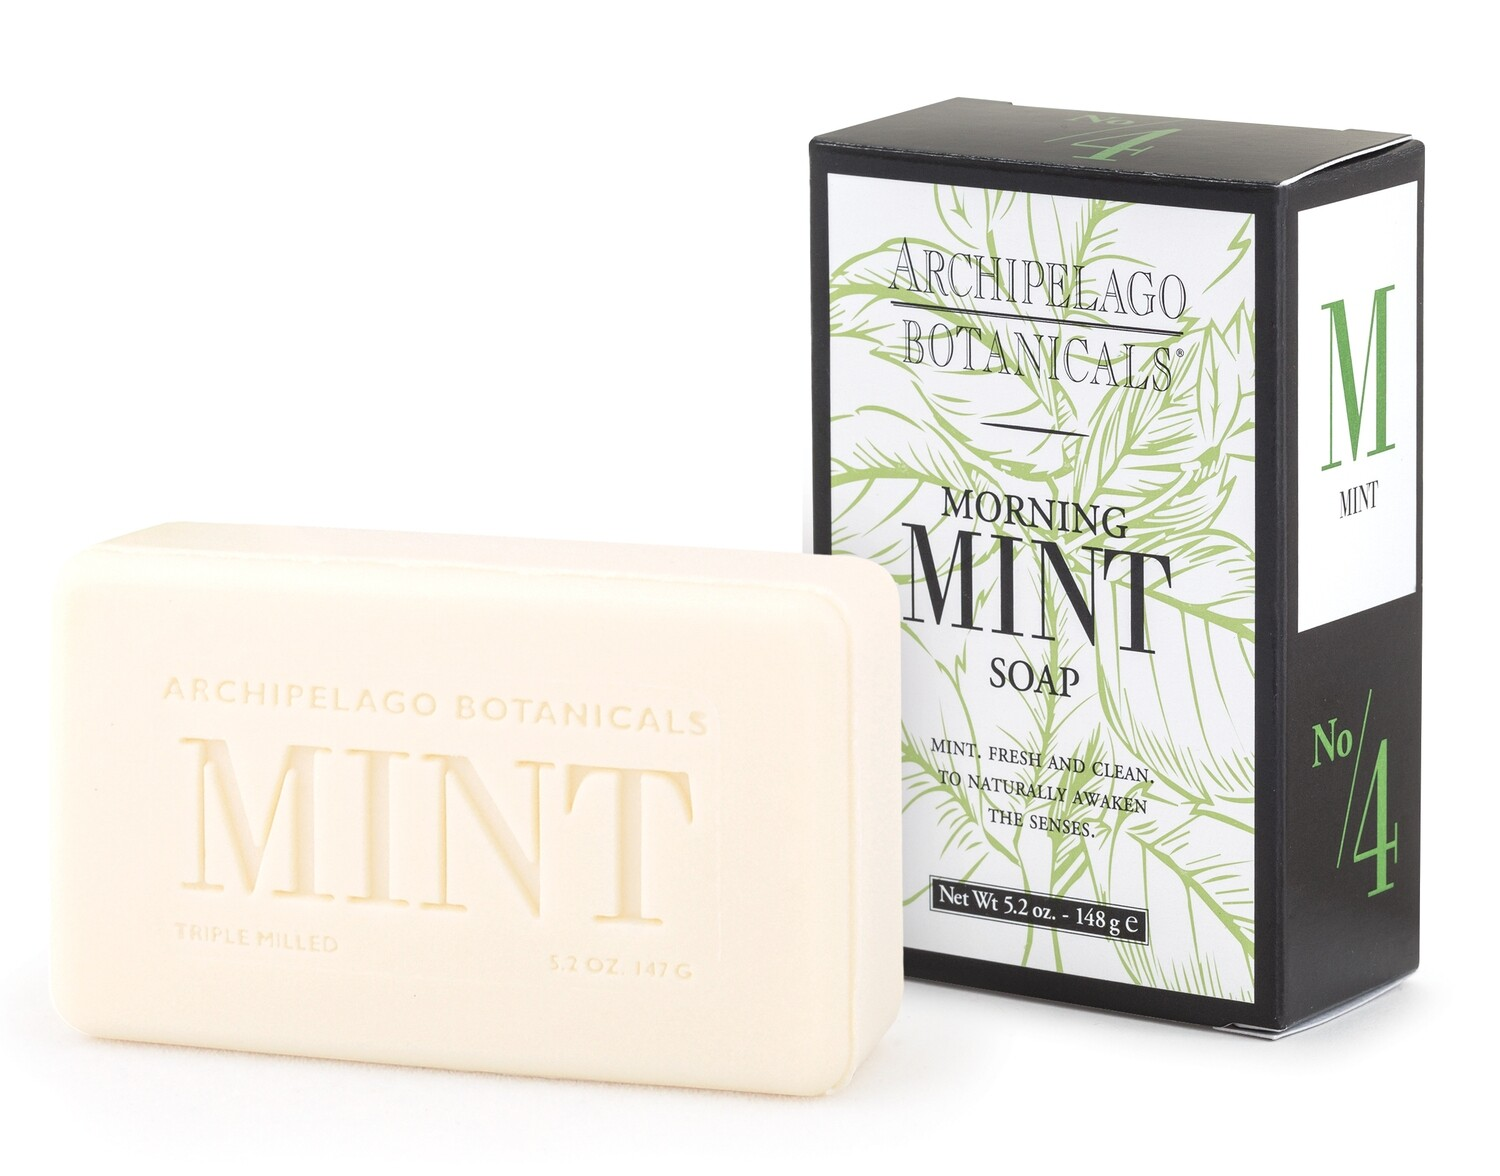 Archipelago Morning Mint bar soap